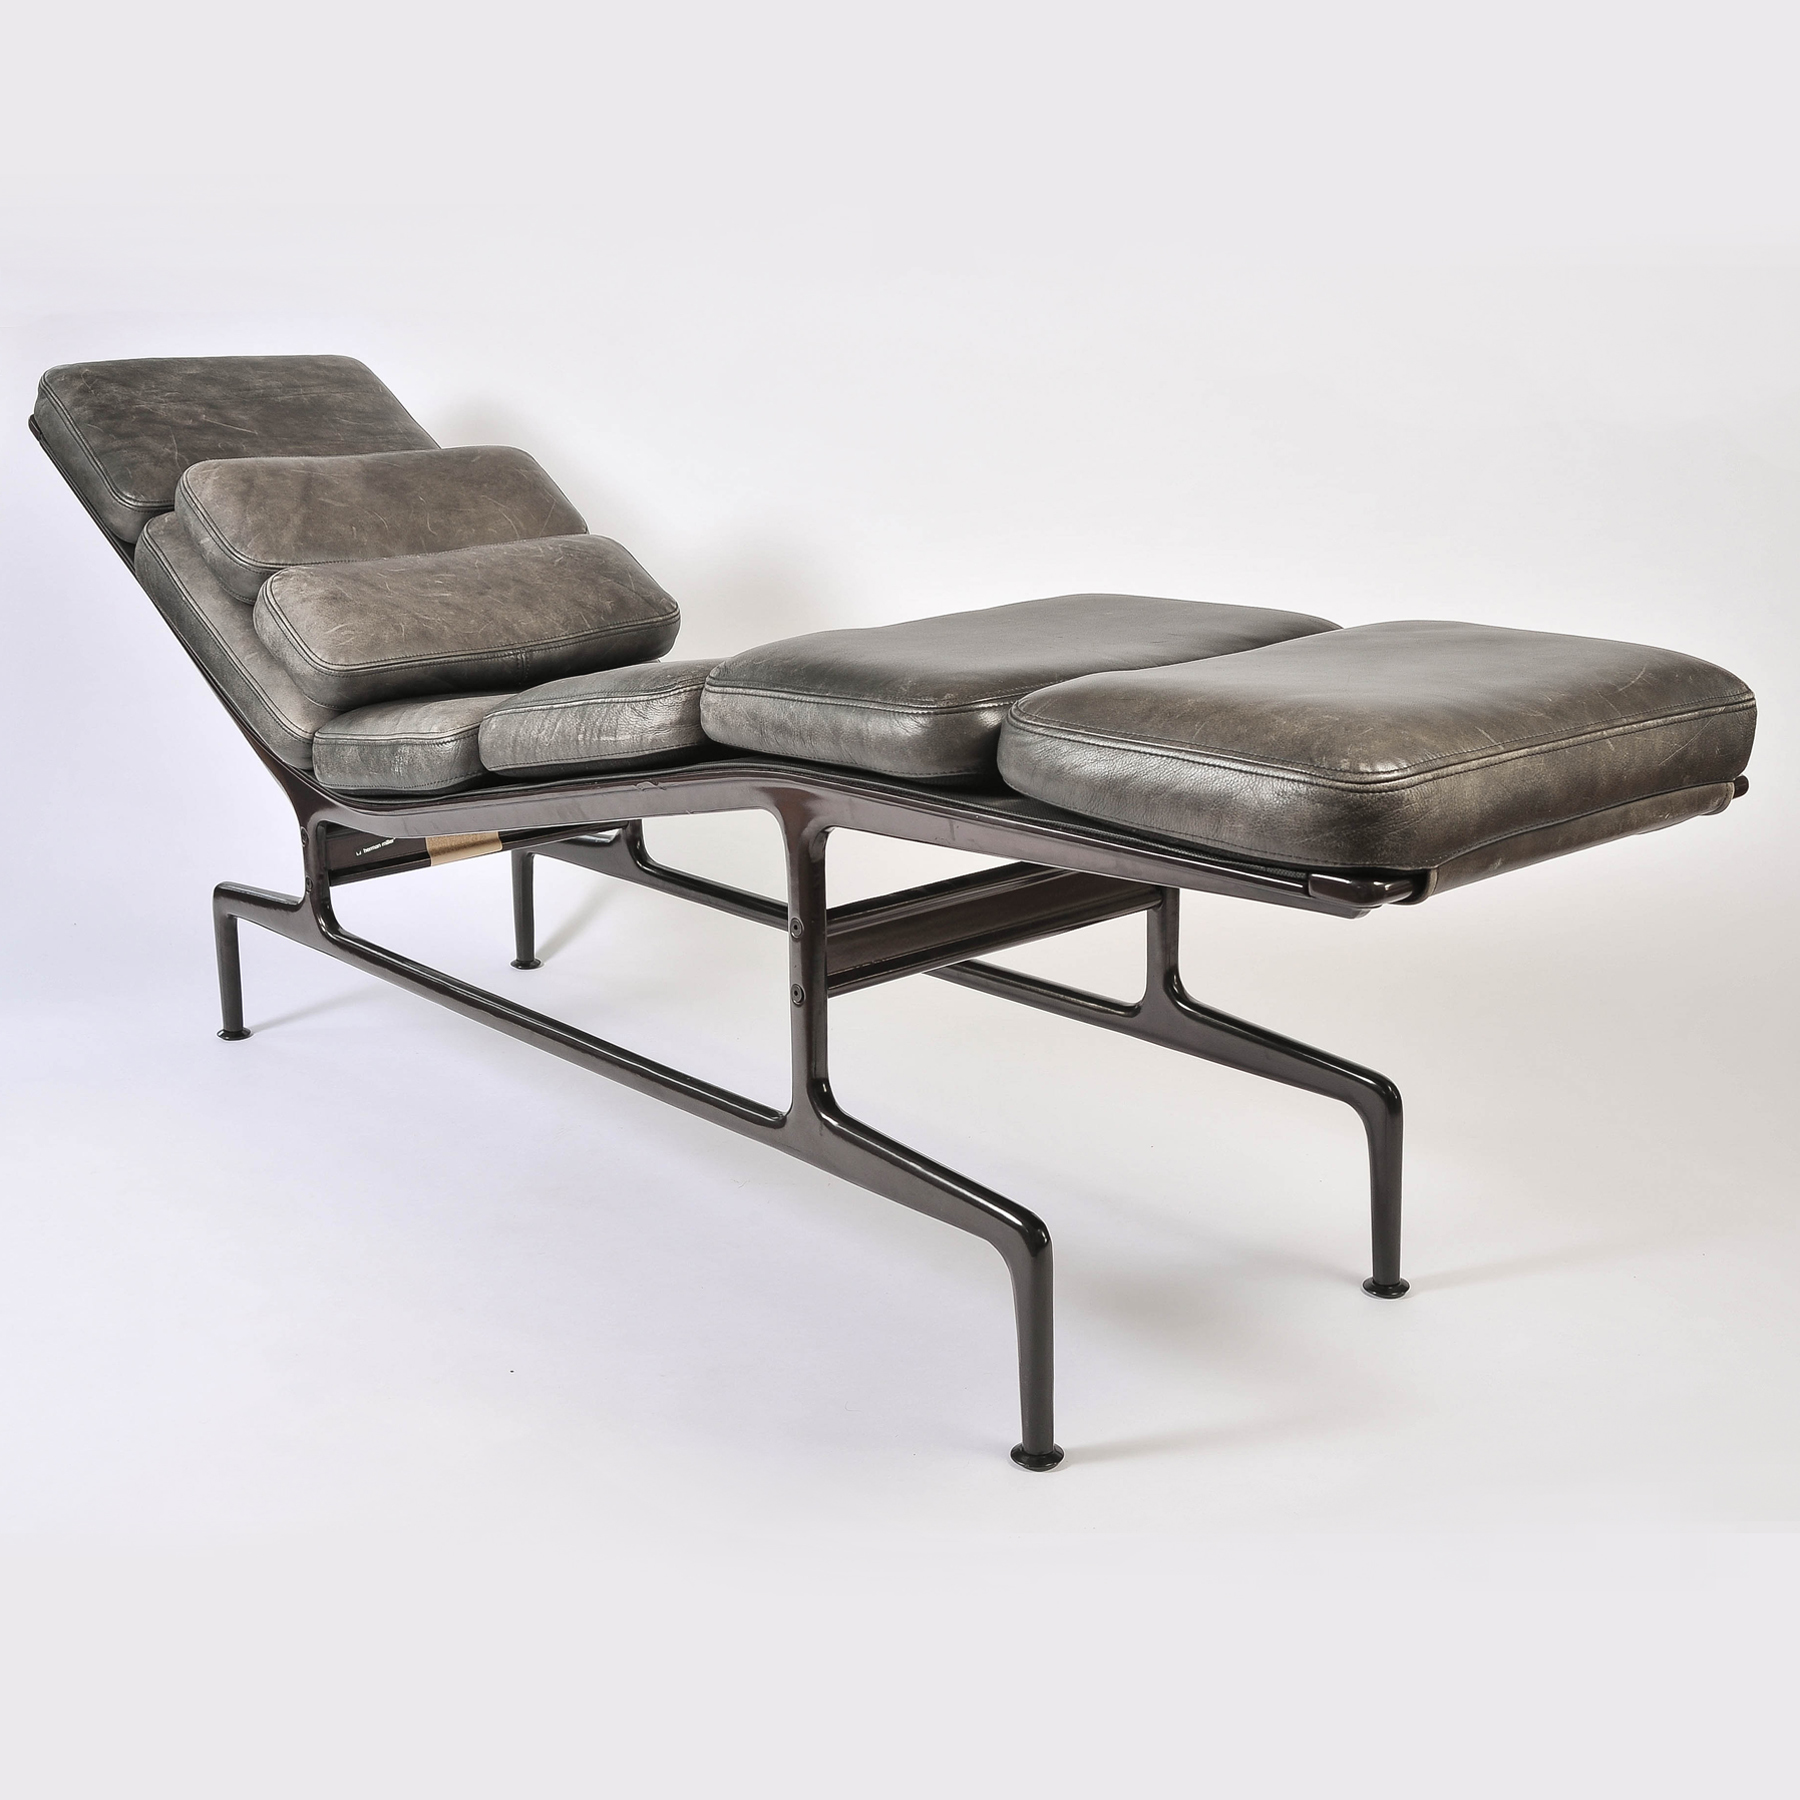 Charles eames 39 billy wilder 39 chaise longue valerie wade for Chaise eames